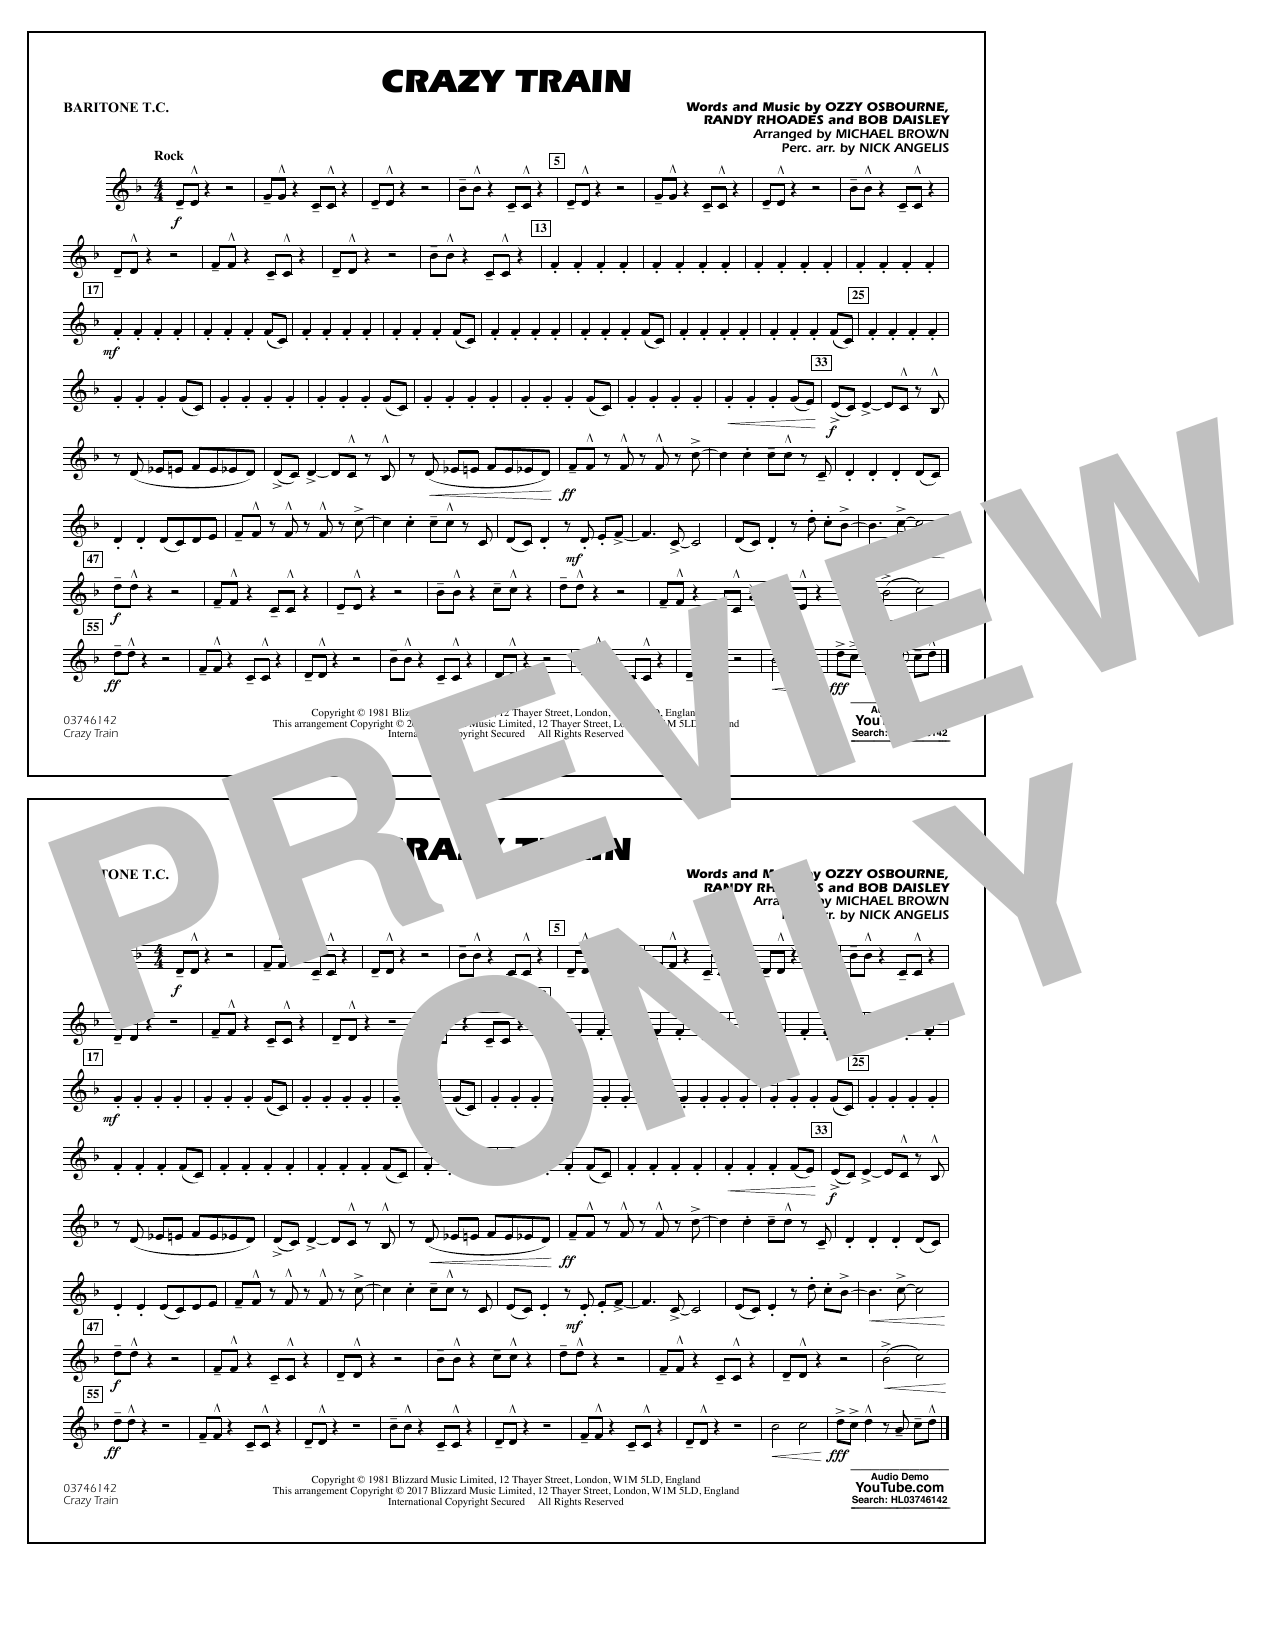 Crazy Train - Baritone T.C. Sheet Music